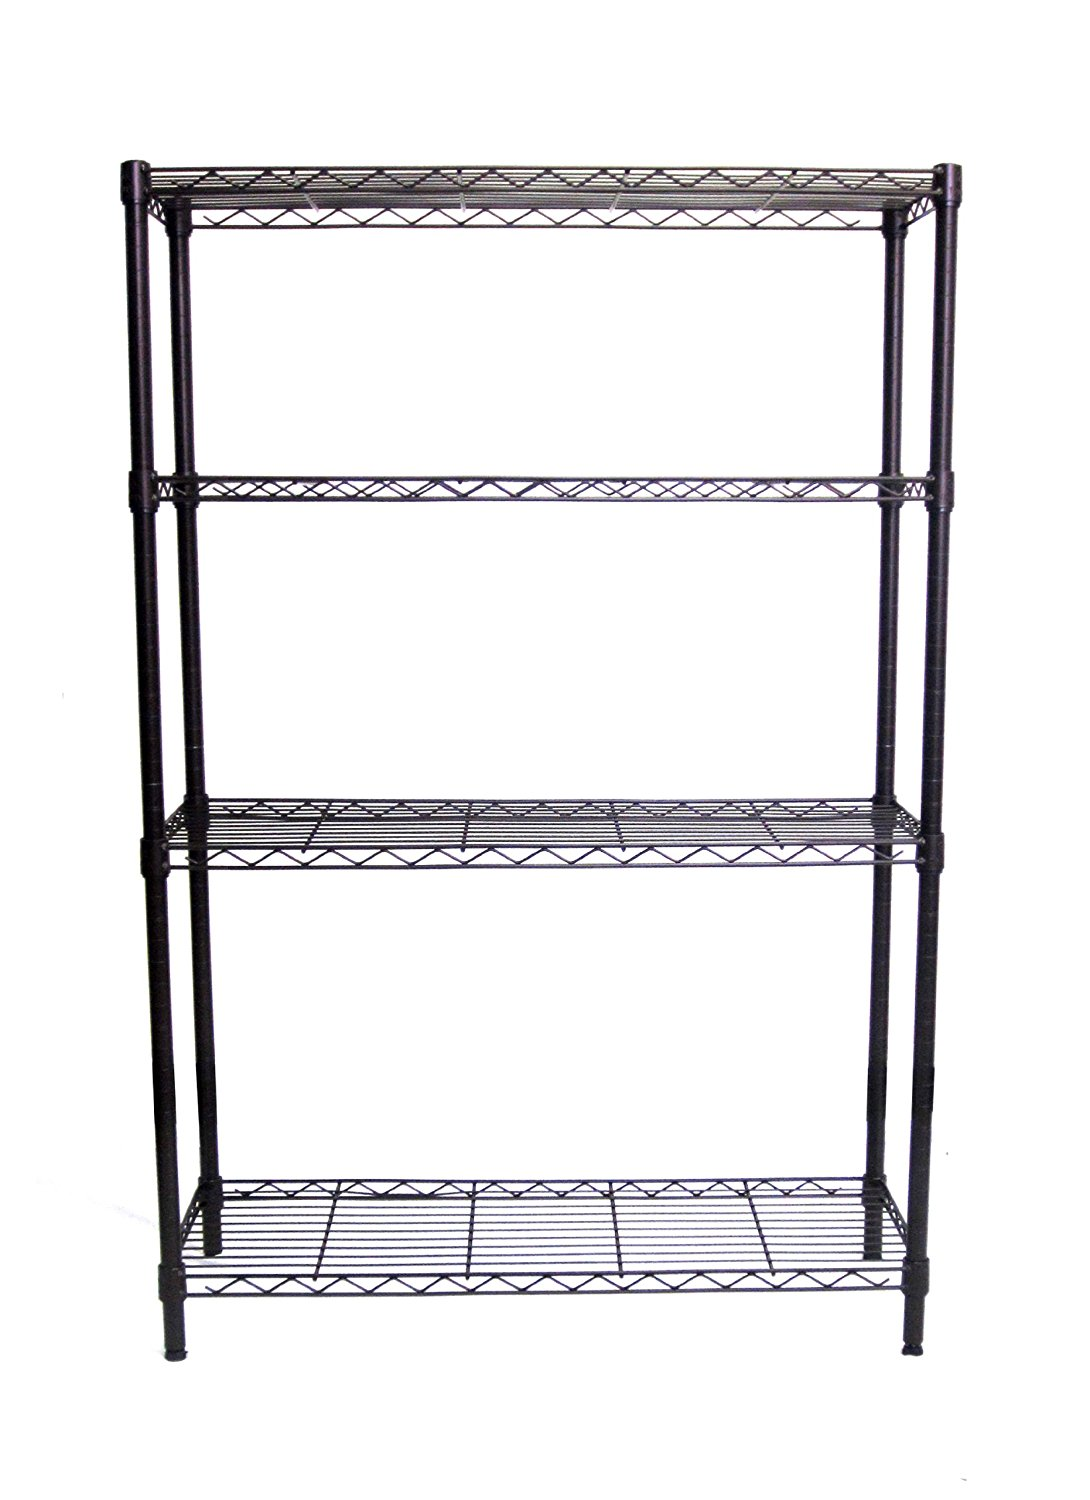 TRINITY 4-Tier NSF Wire Shelving Rack, 36 by 14 by 54-Inch, Bronze ...